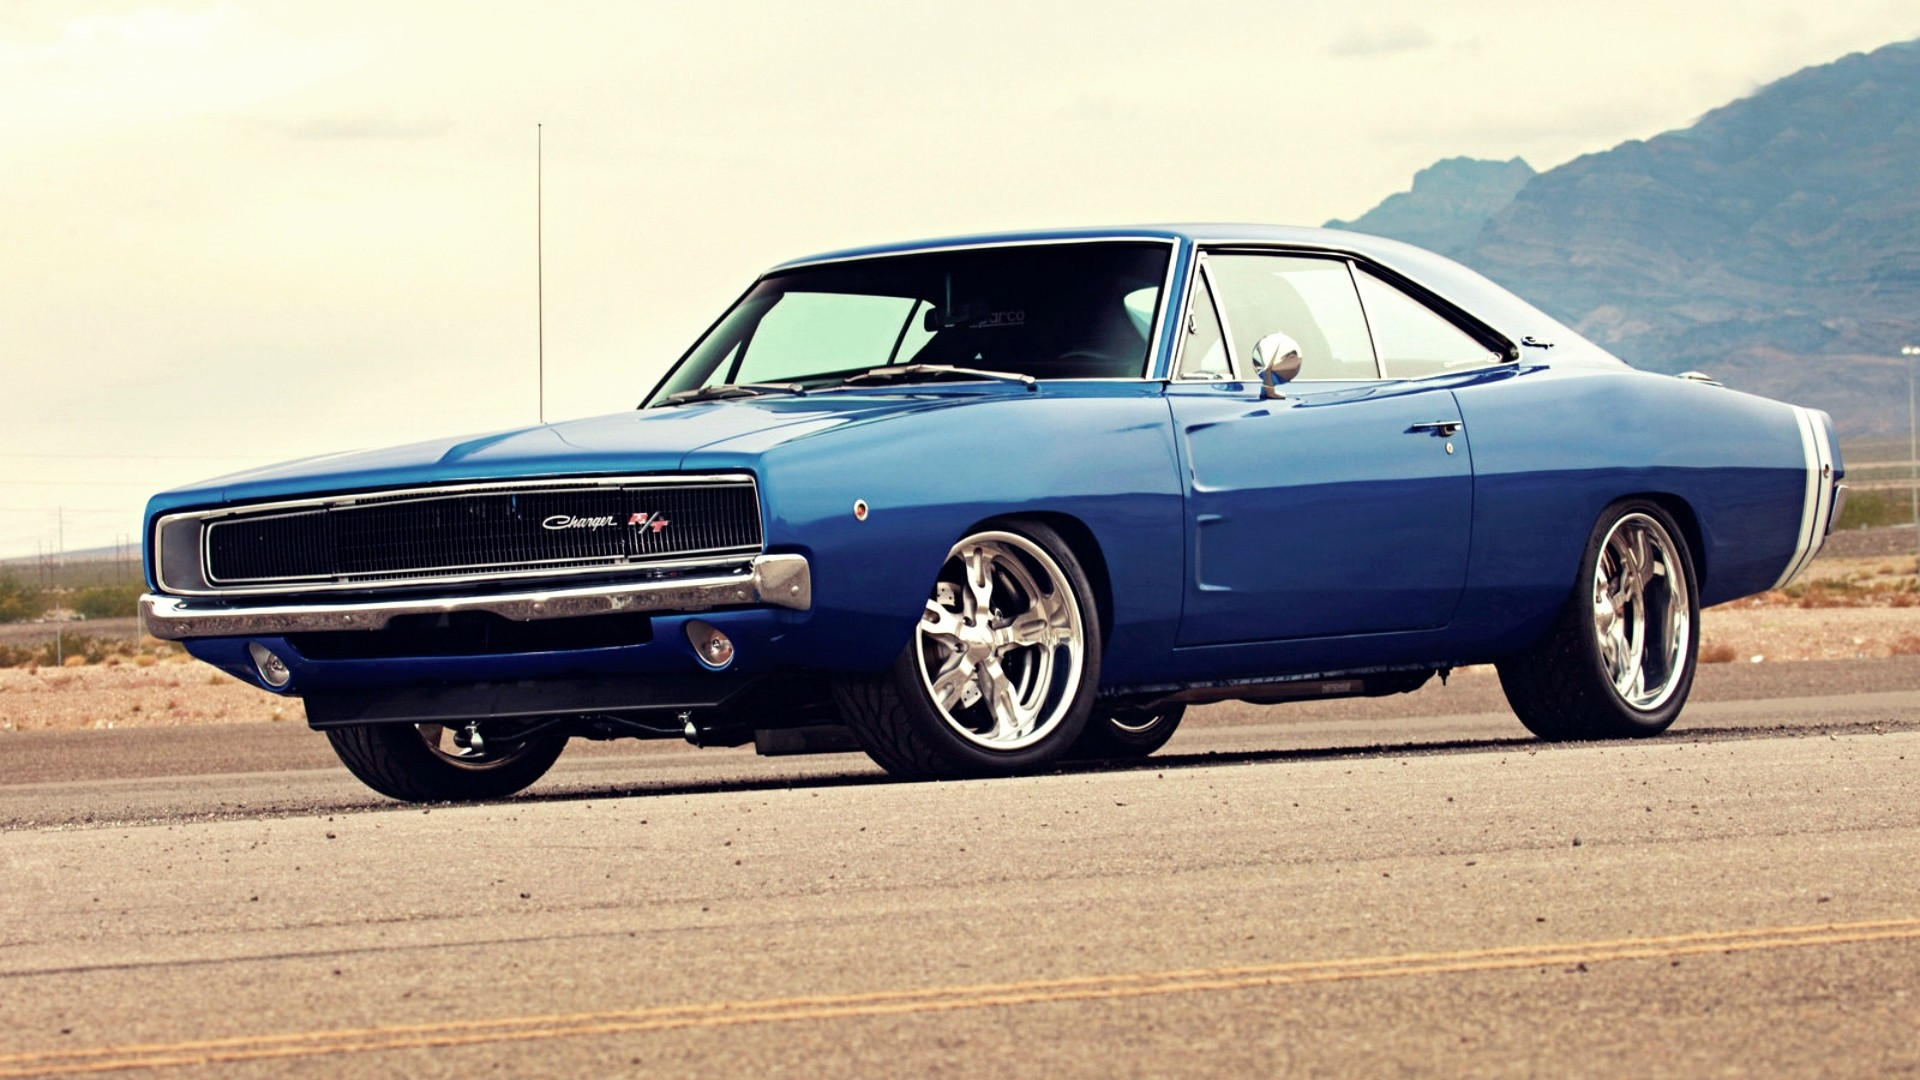 cars Dodge vehicles Dodge Charger 1970 Wallpapers 1920x1080